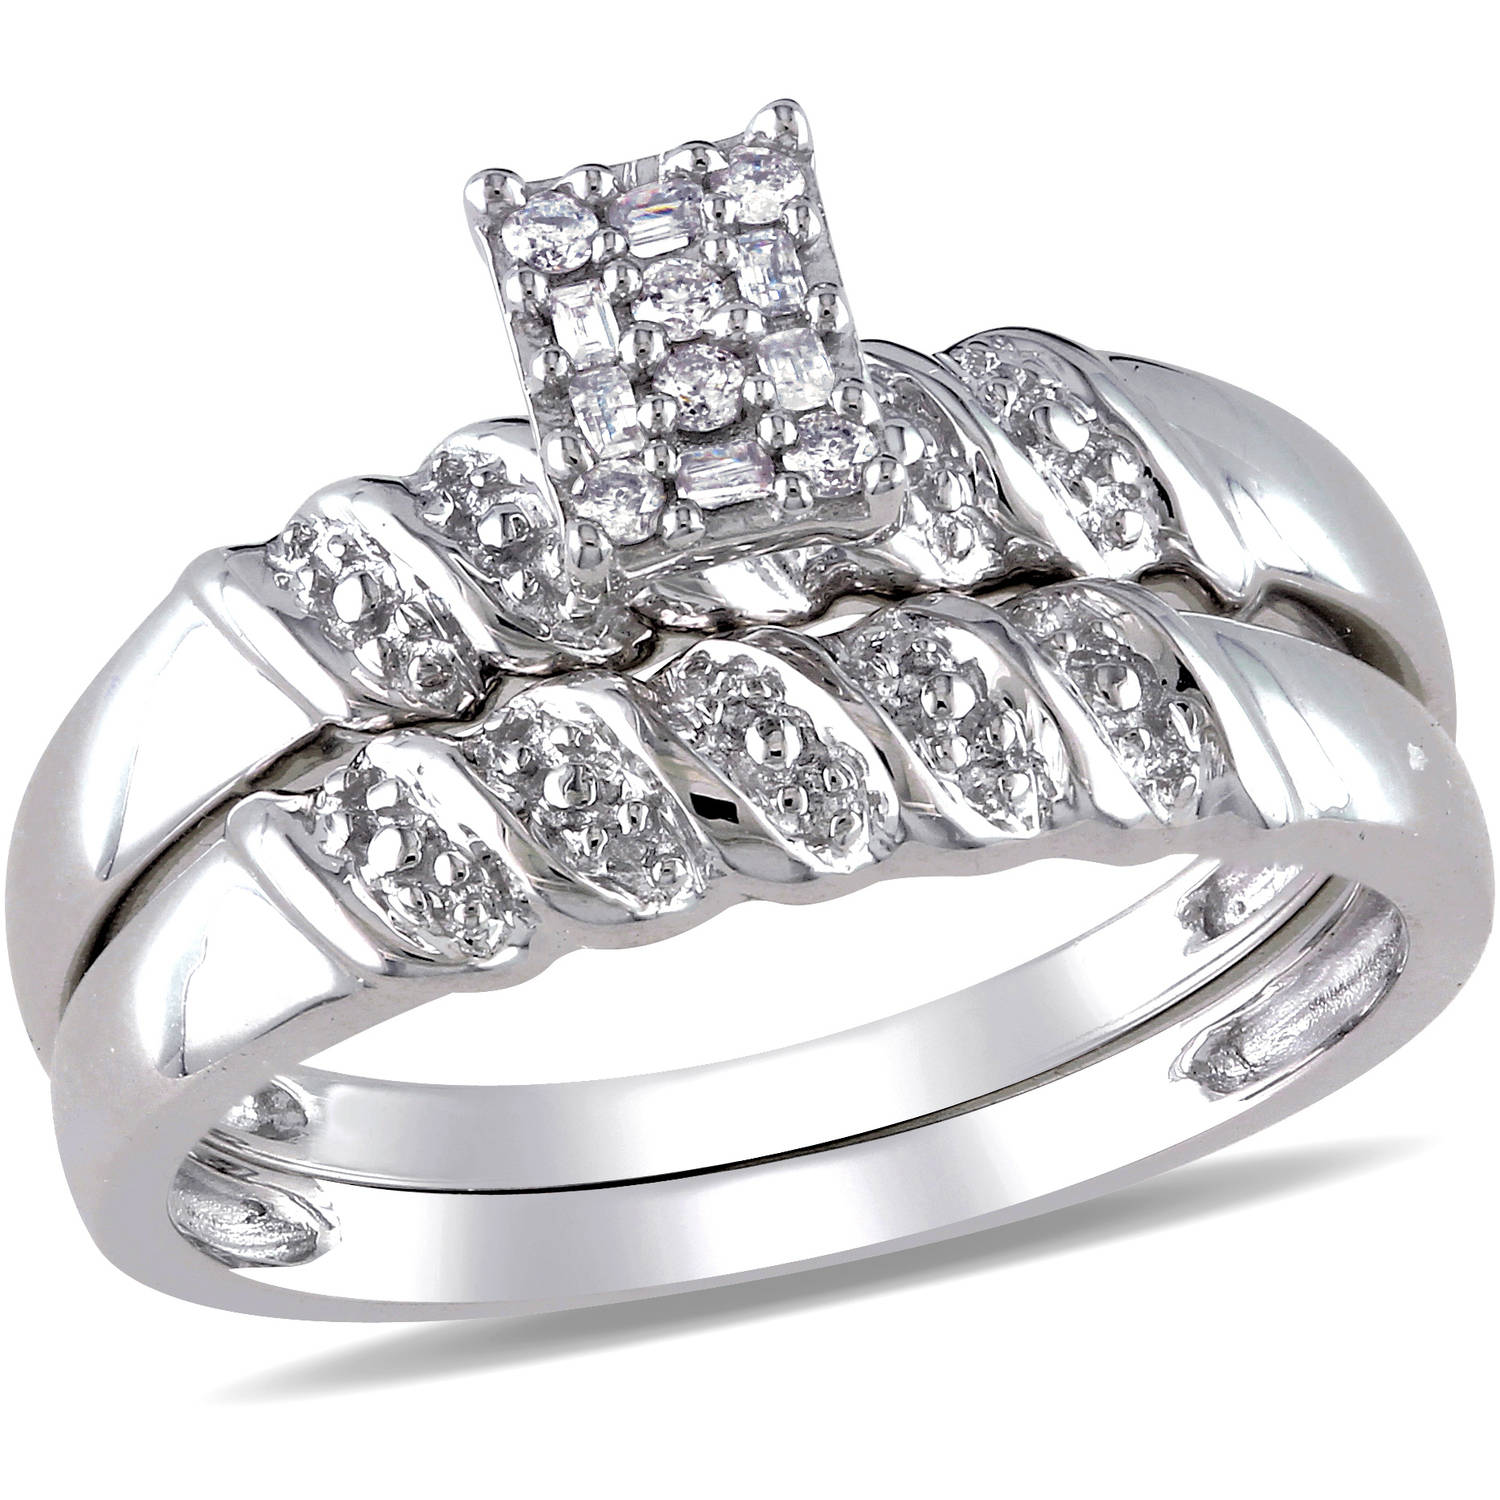 Miabella 1/10 Carat T.W. Round and Baguette-Cut Diamond Sterling Silver Bridal Set